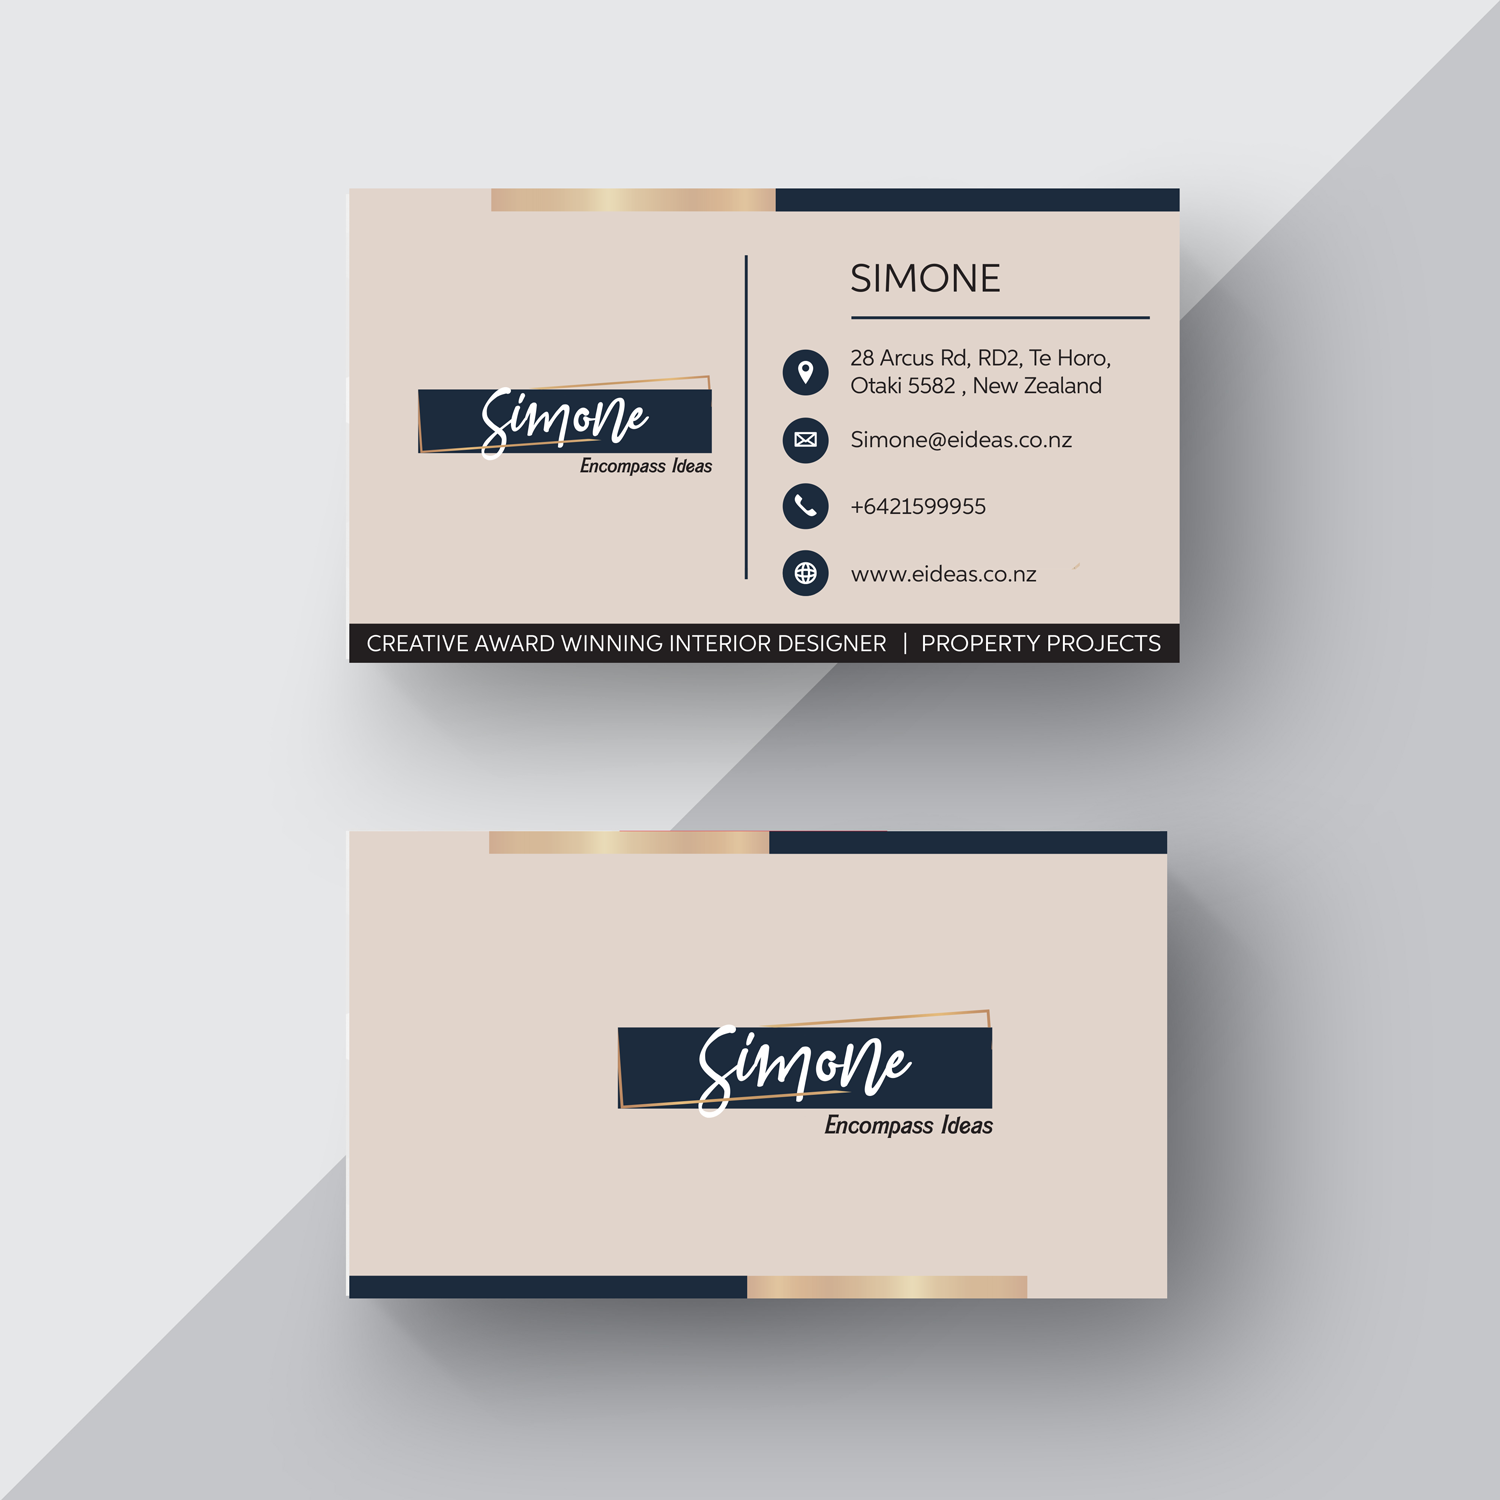 Modern Upmarket Architecture Business Card Design For Encompass Ideas By 4ad Design 21351529